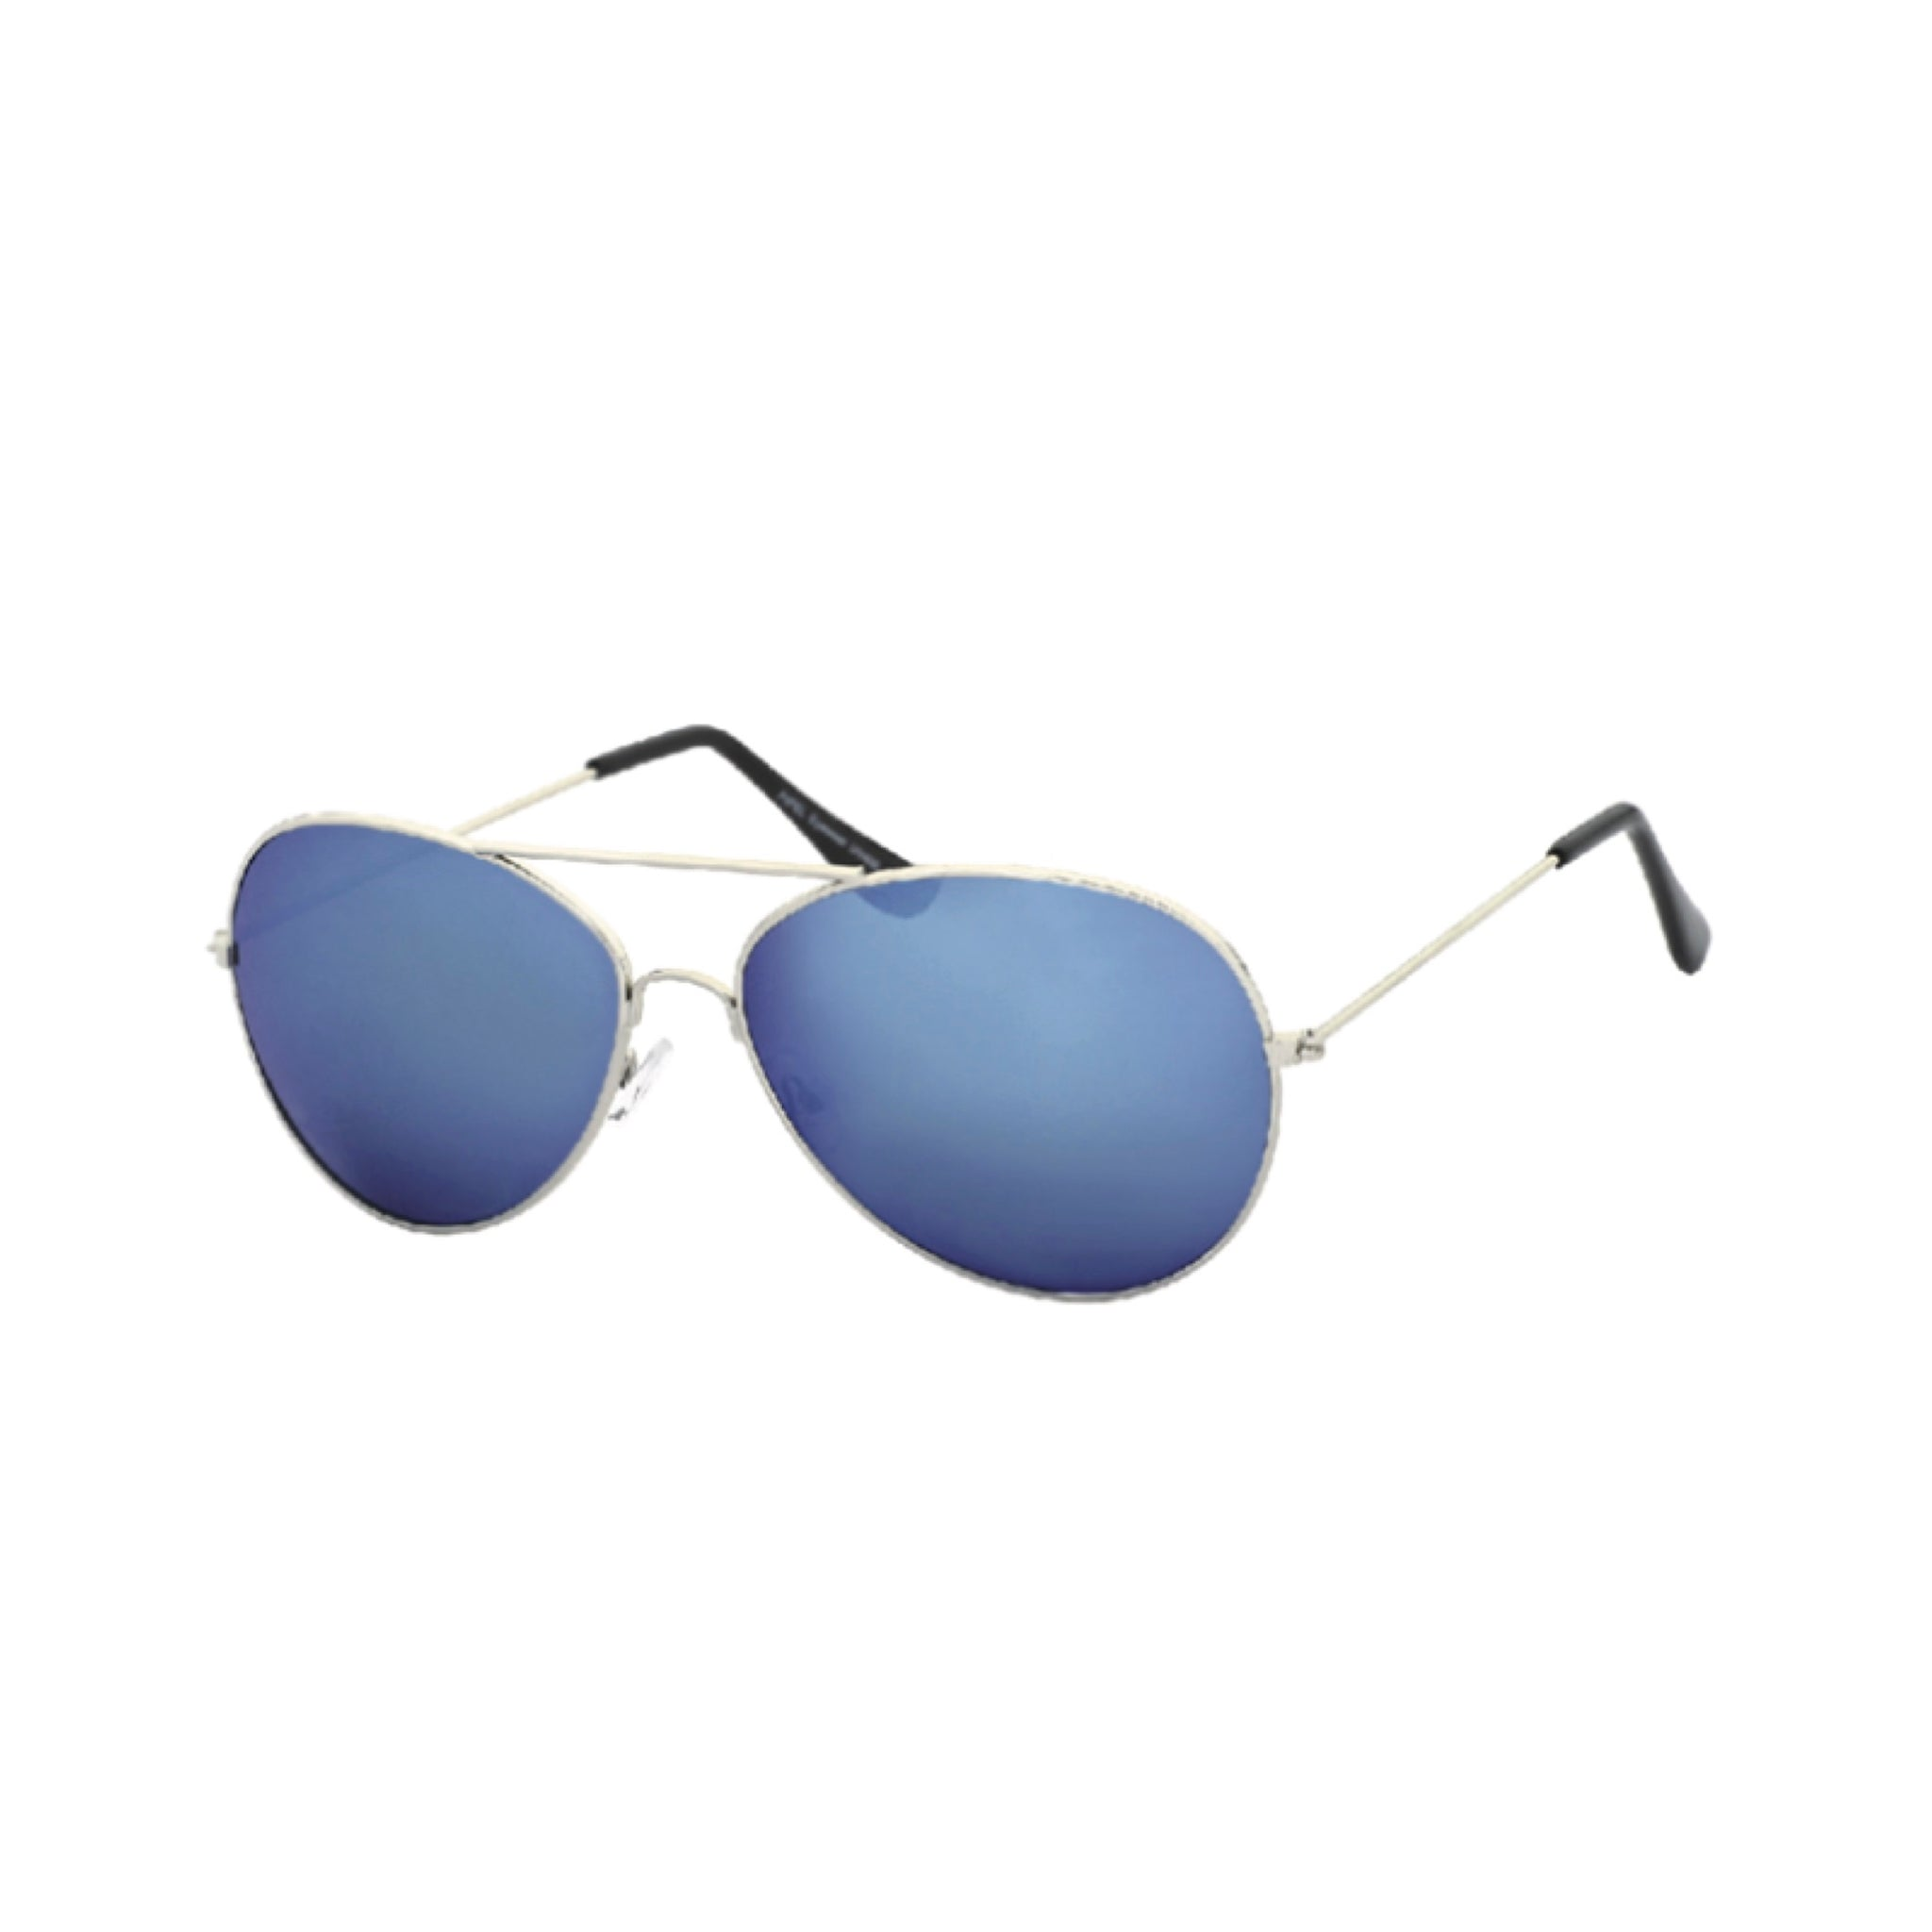 HIGH QUALITY CLASSIC BLUE MIRRORED AVIATOR SUNGLASSES - svnx